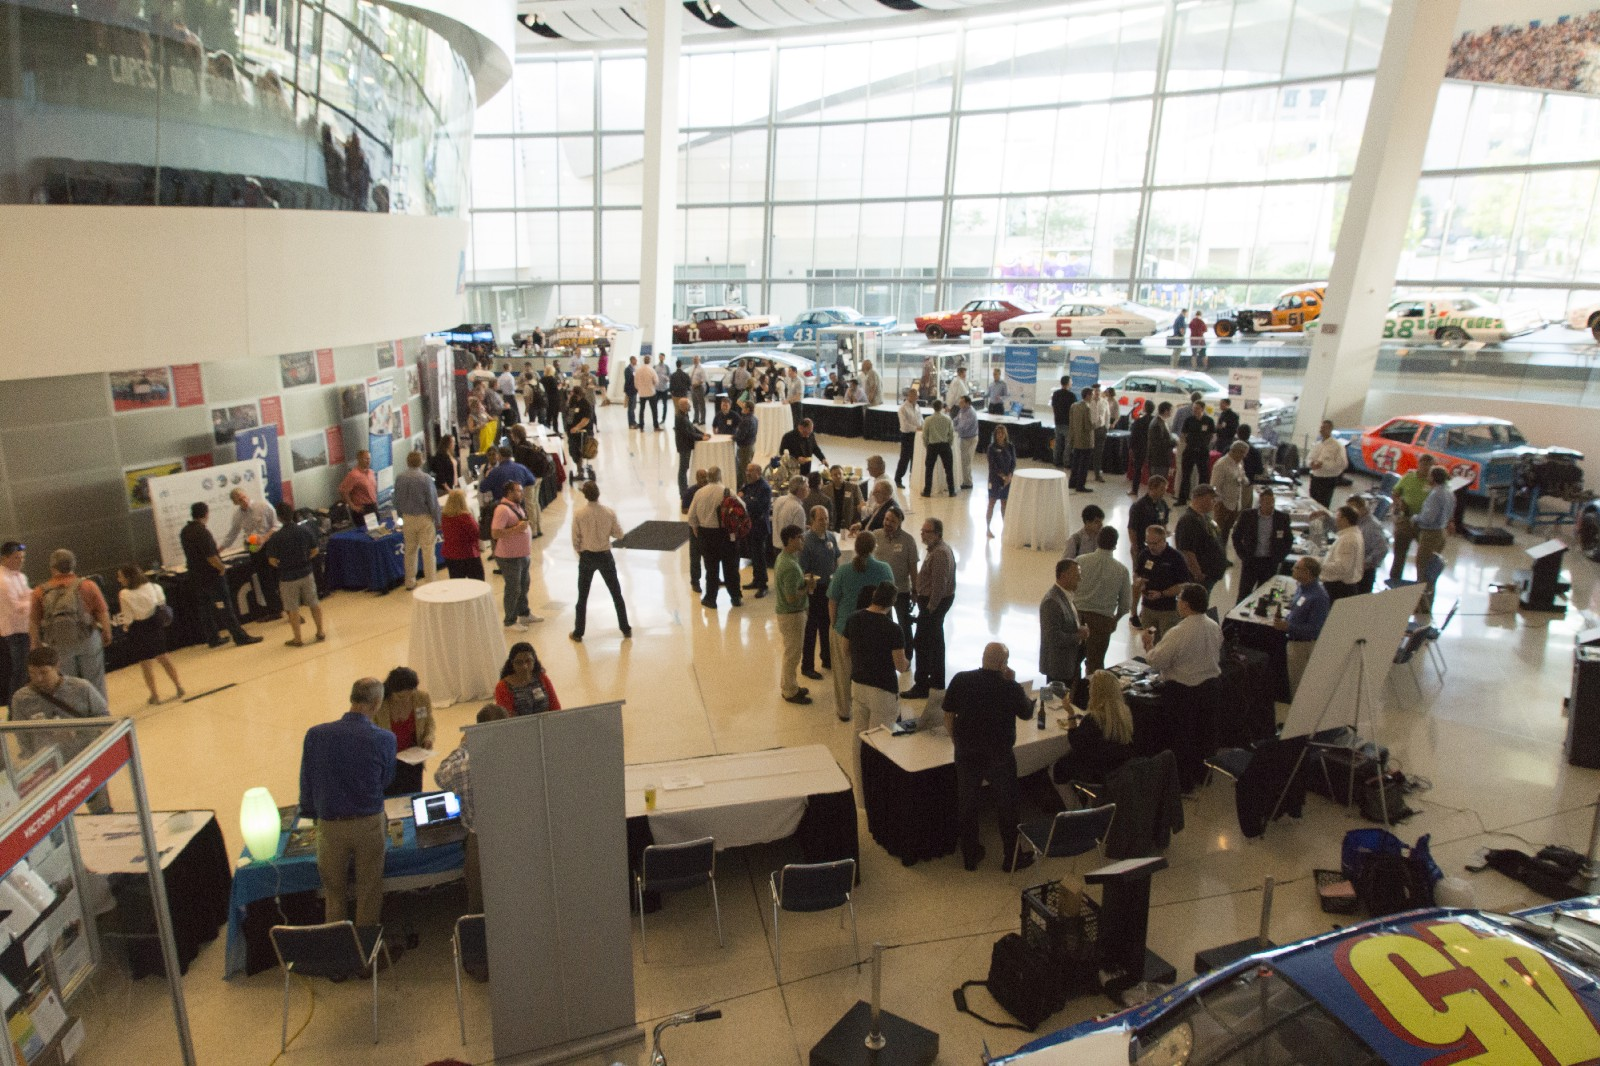 RIoT evening session with vendors spread out in the main hall of the NASCAR Hall of Fame